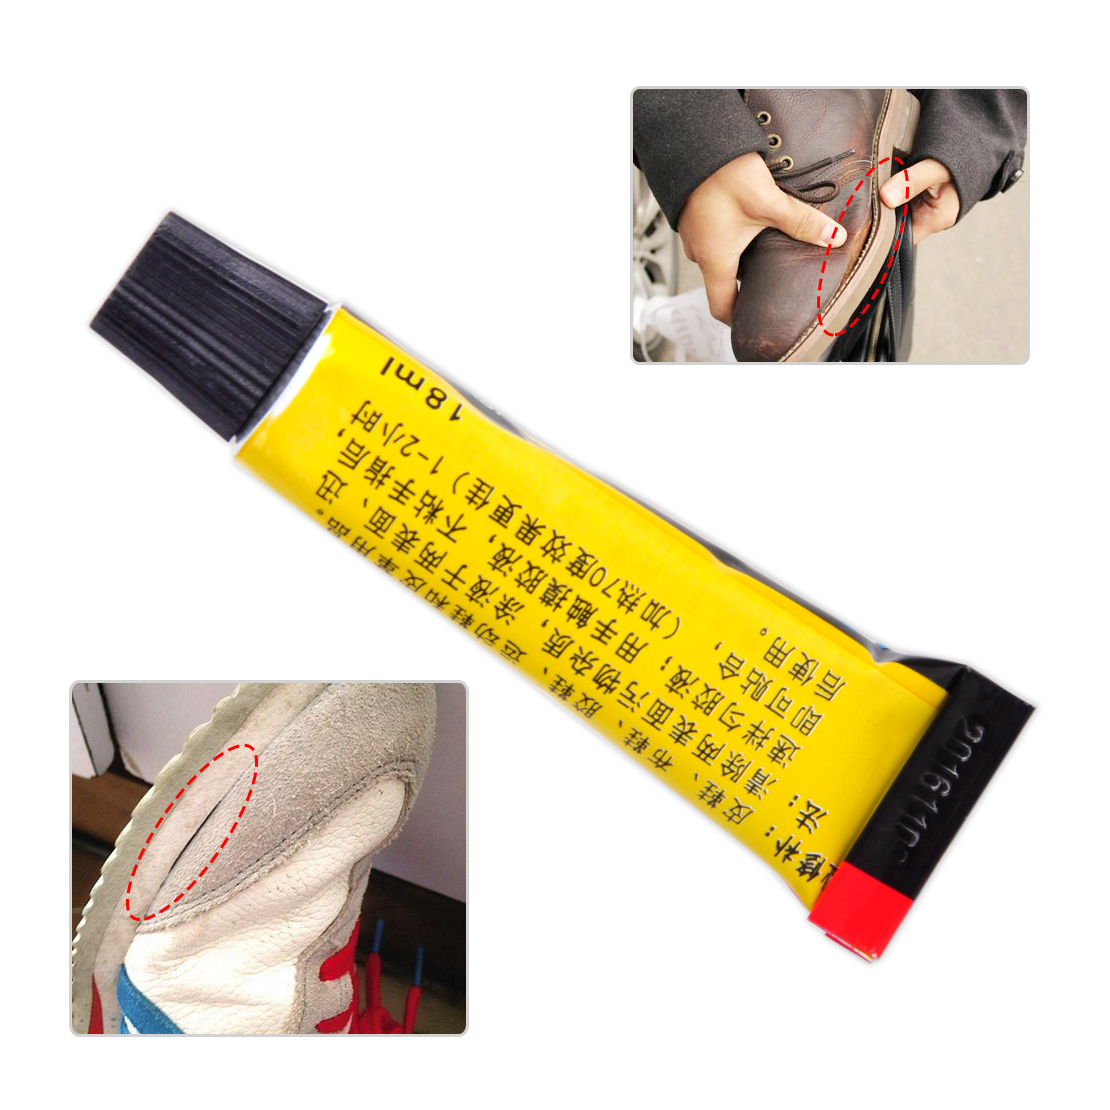 18ml Super Adhesive Repair Glue For Shoe Leather Rubber